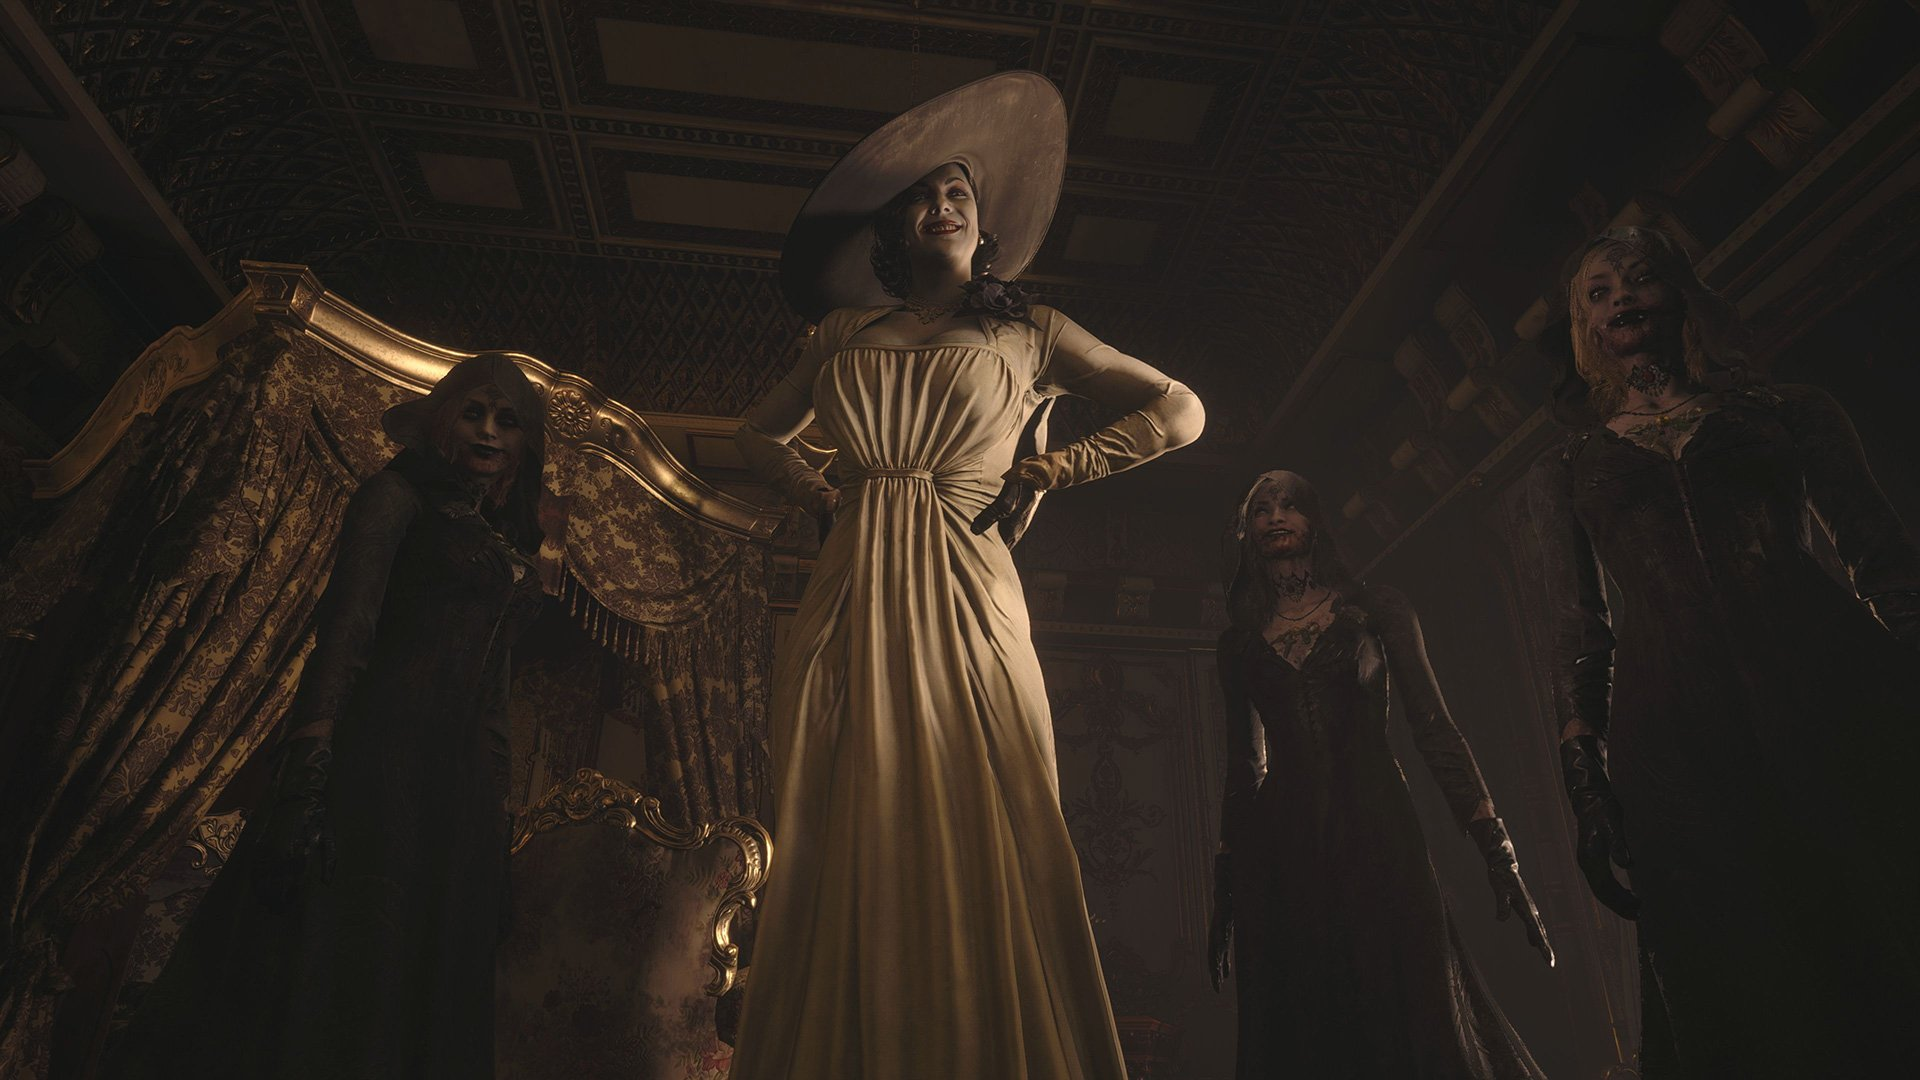 Resident Evil Village's art director says the Lady D fanfare is 'great' and, oh yeah, she's over nine feet tall screenshot